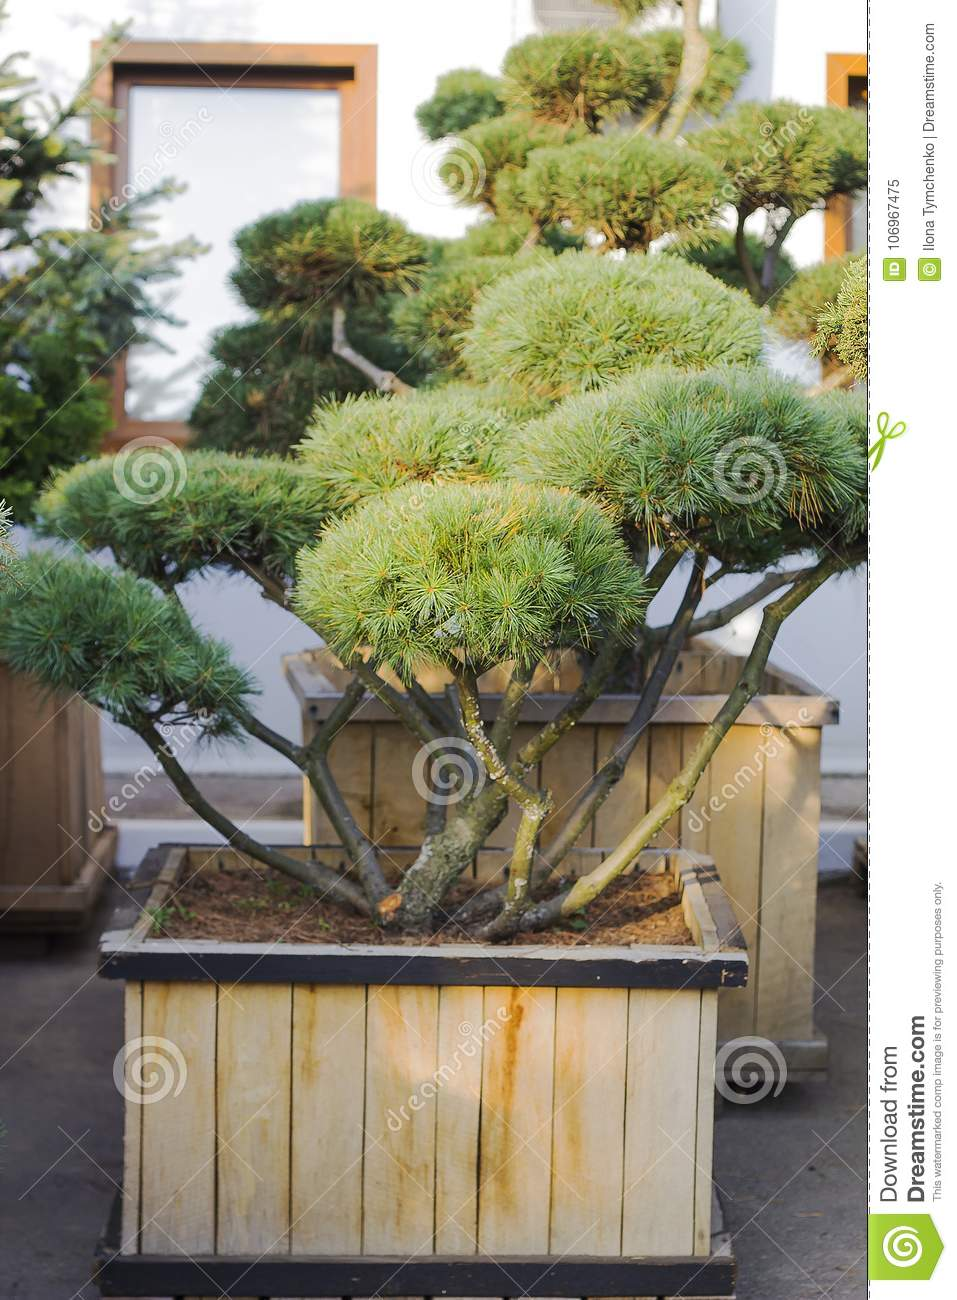 Big Pine Topiary In Form Of Clouds Evergreen Tree In Wooden Pot Stock Image Image Of Farming Farm 106967475